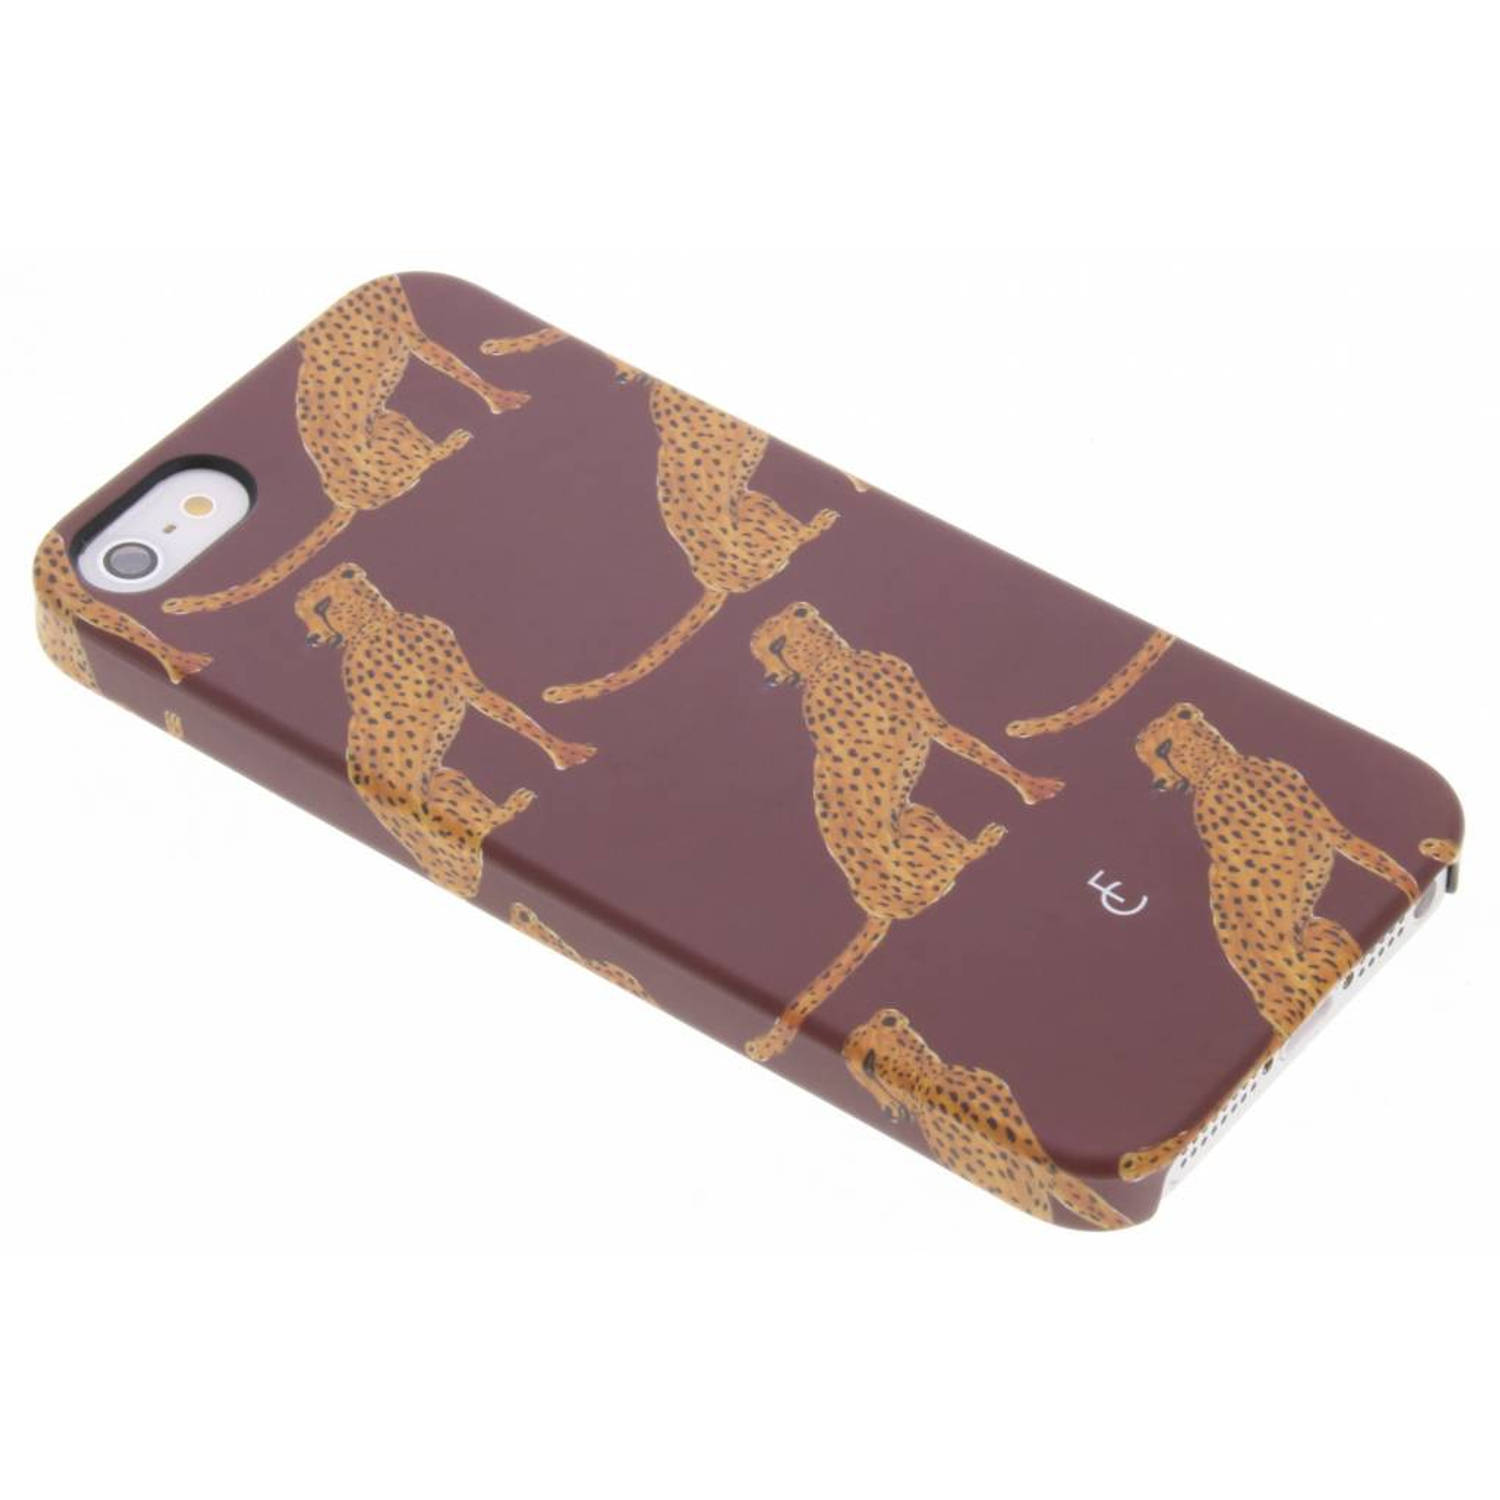 Cheetah hardcase voor de iphone 5 / 5s / se